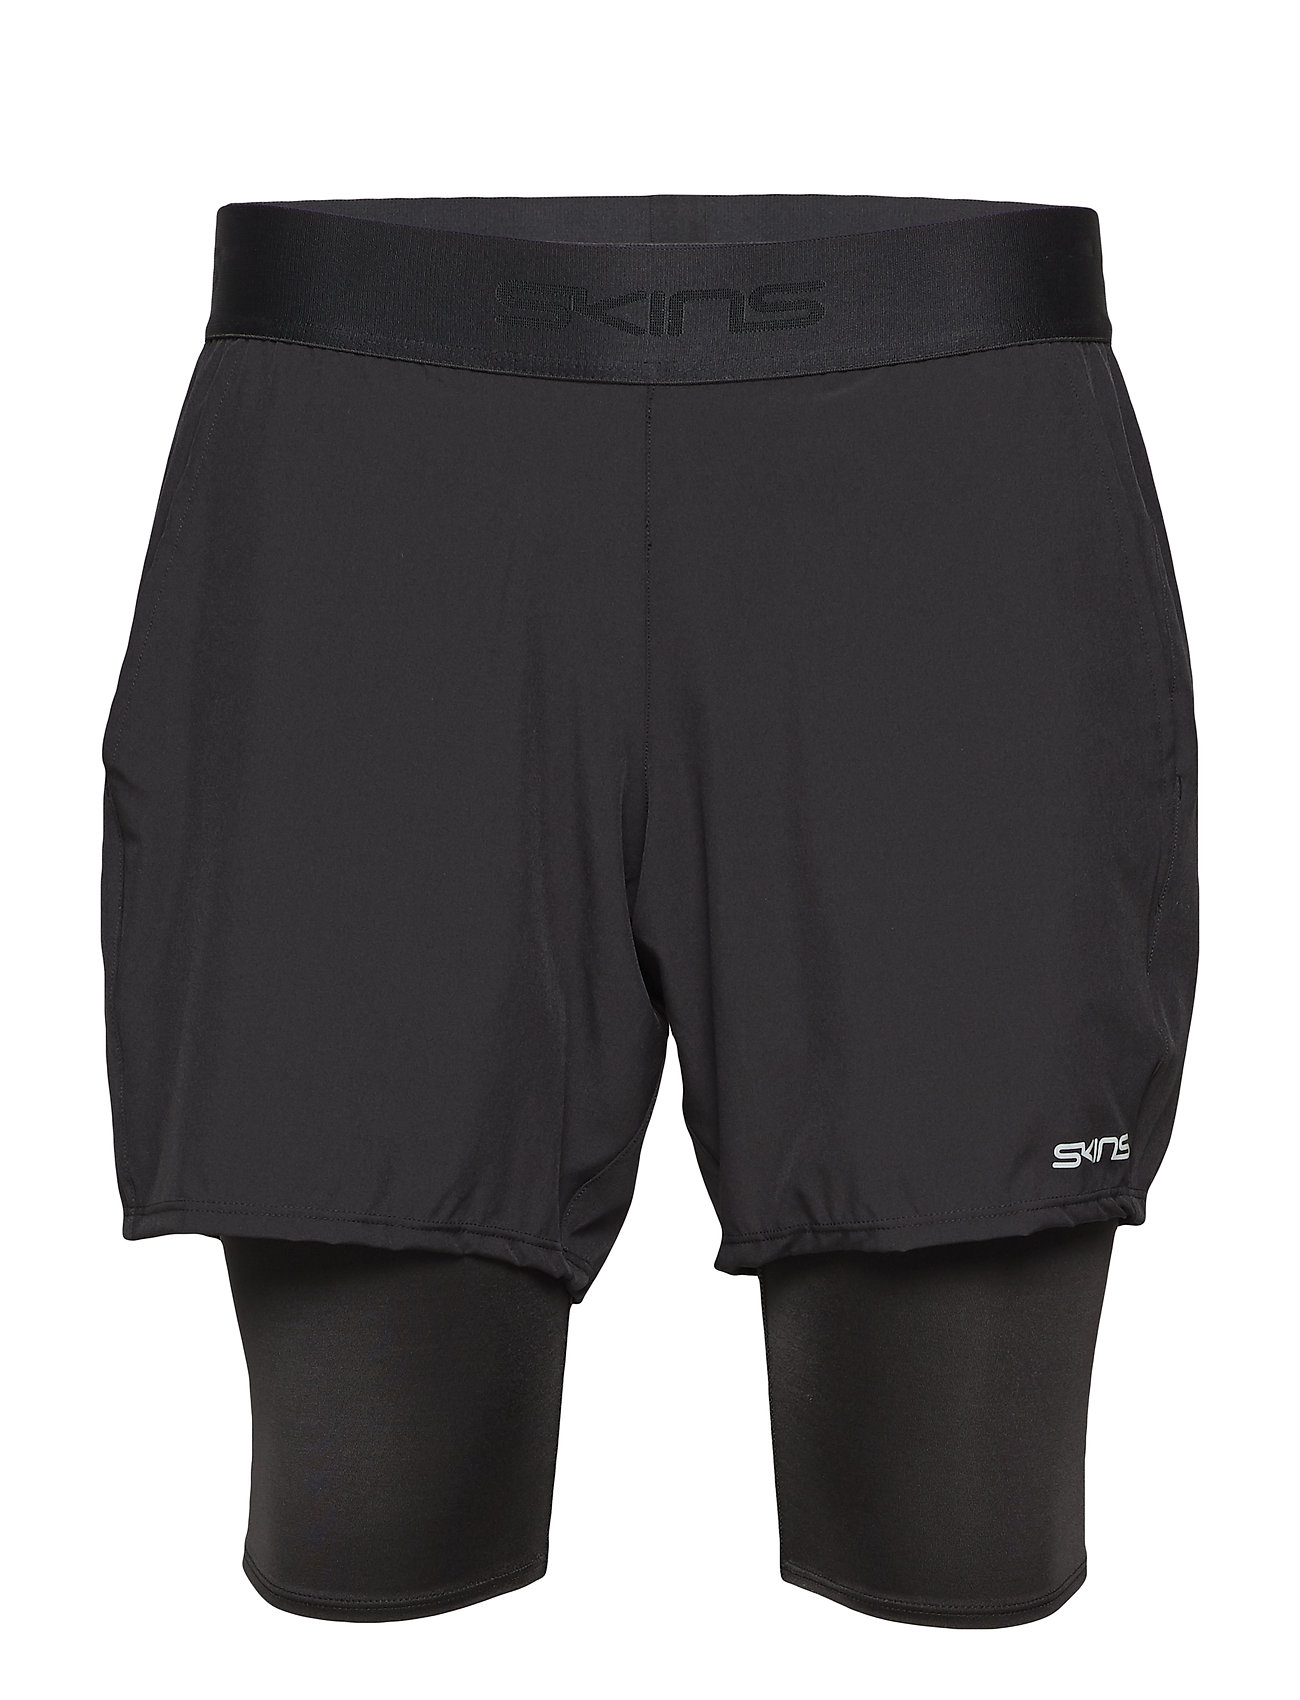 3a36aa8fcca2f Dnamic Primary Mens Superpose 1/2 Tight (Black) (£39) - Skins ...